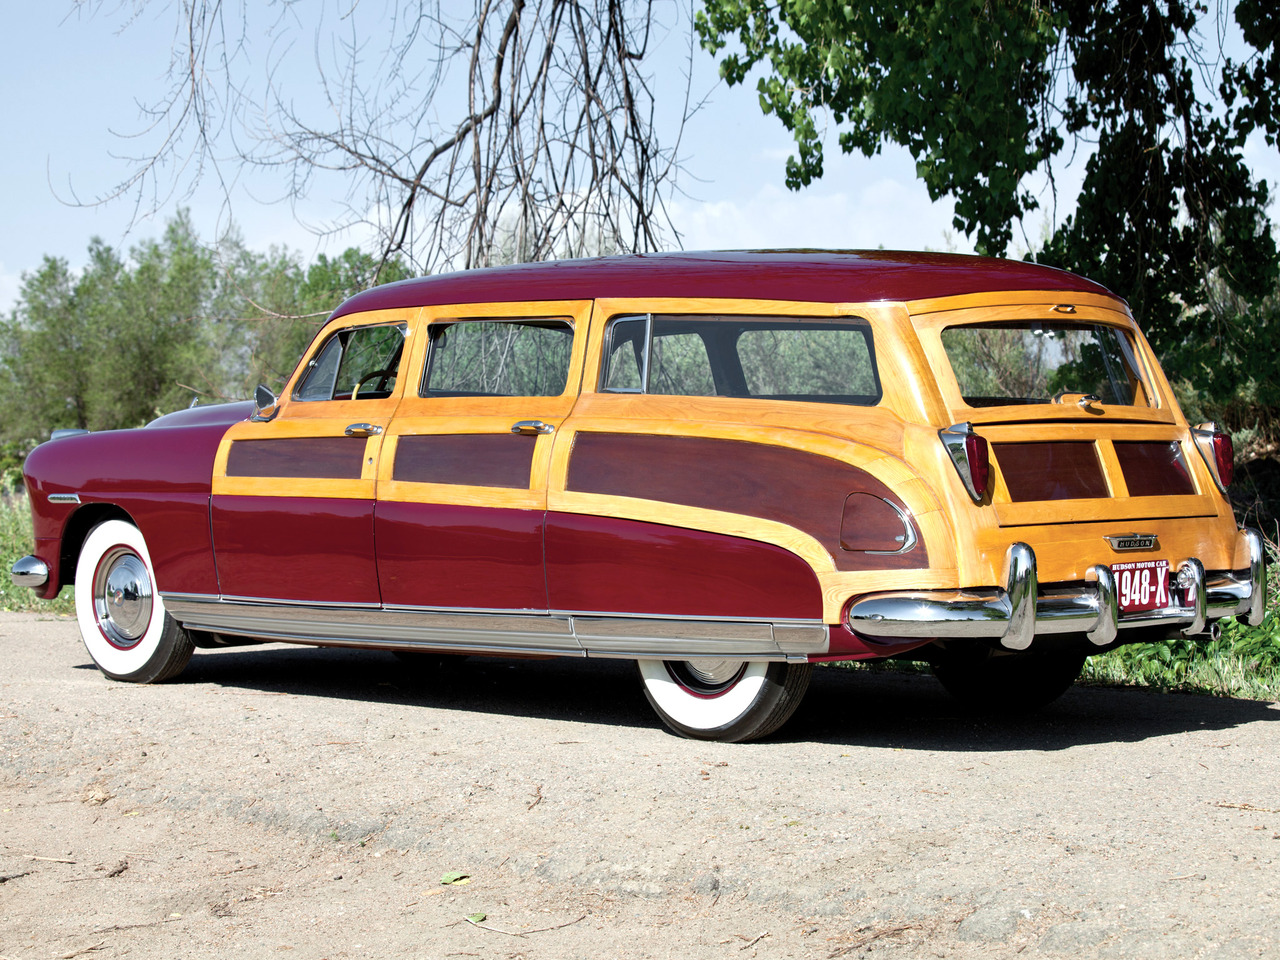 1948 Hudson Commodore Station Wagon, with wood trim